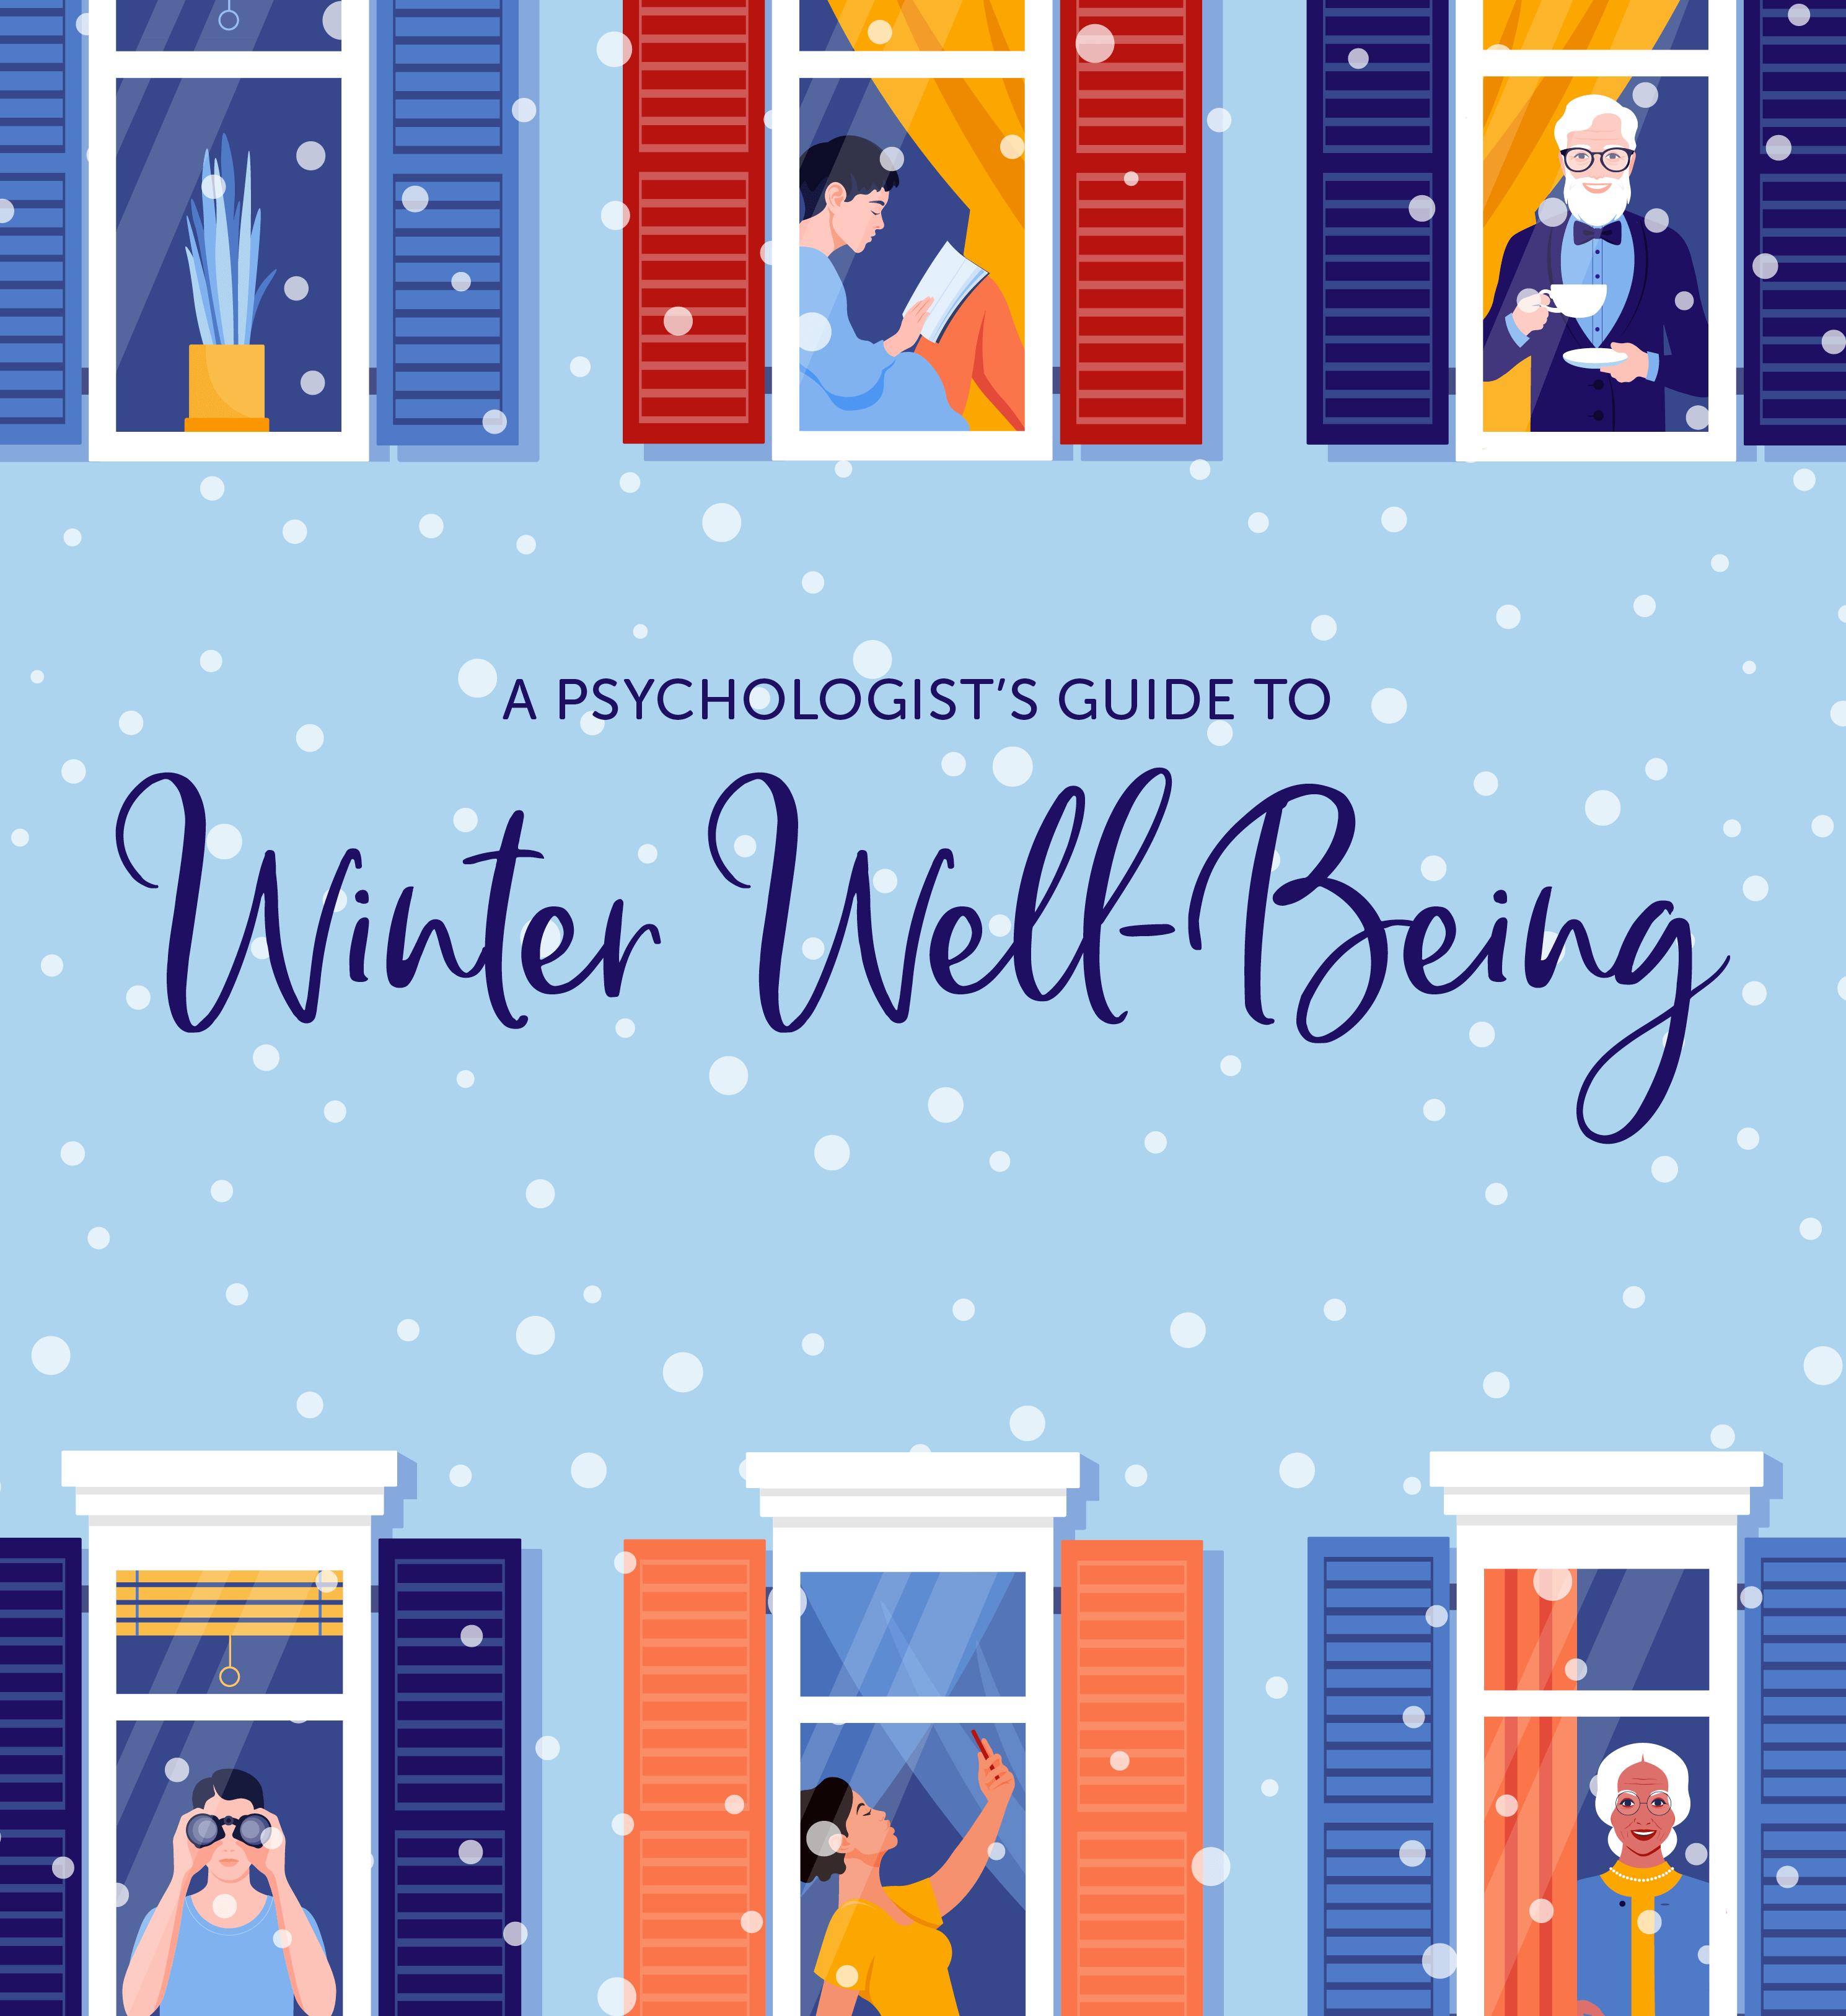 a psychologist's guide to winter well-being